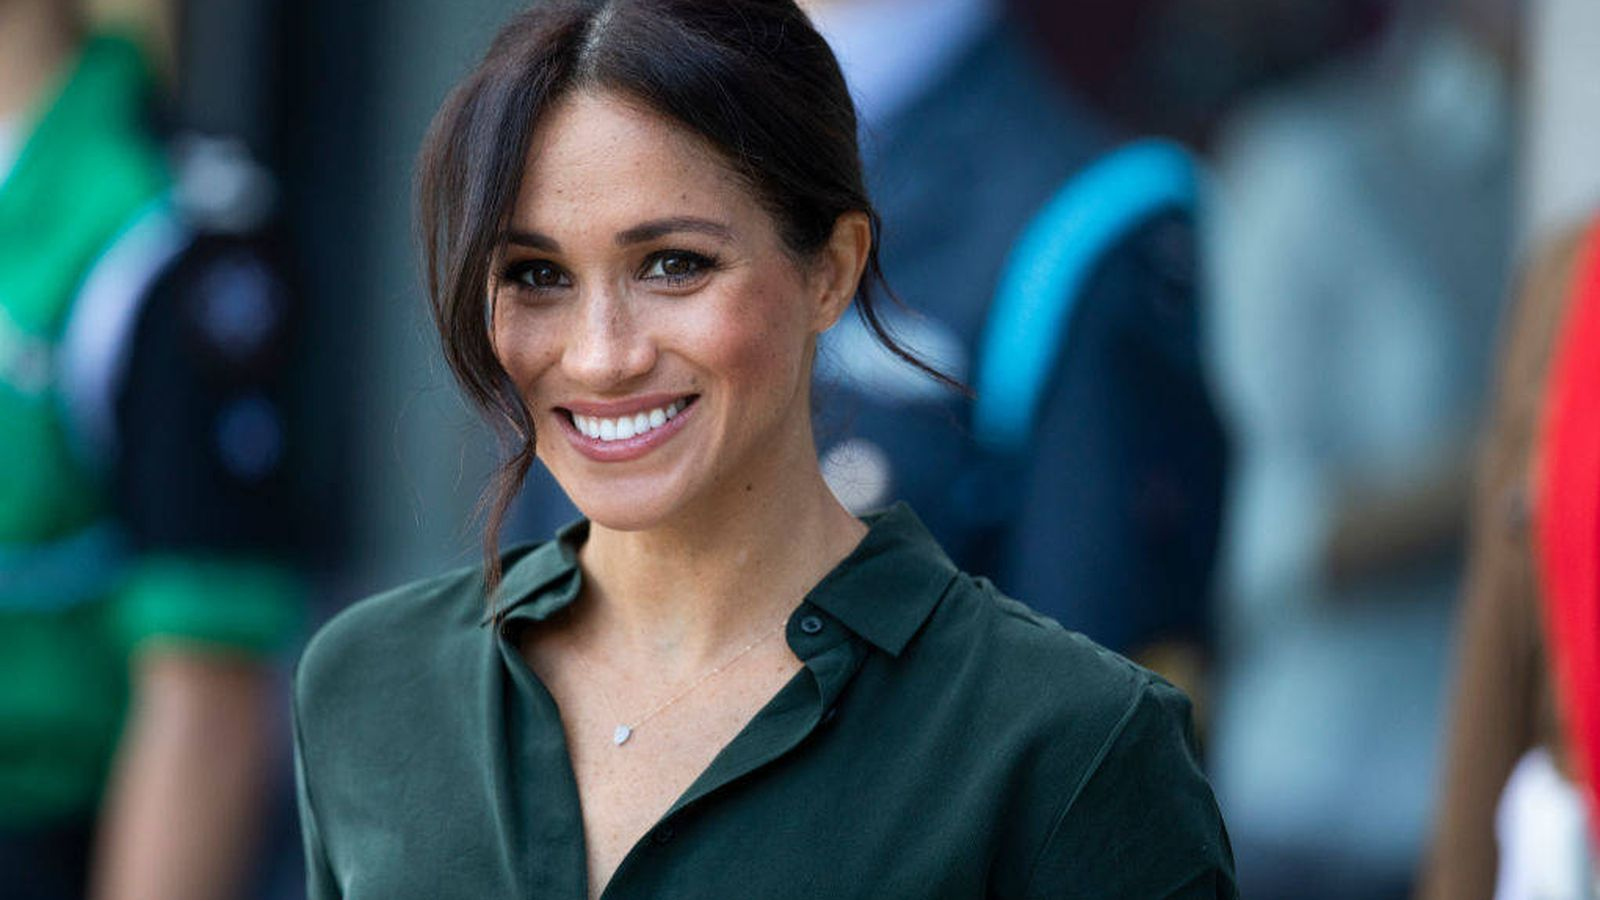 Foto: La duquesa de Sussex, durante una visita a Chichester. (Getty)